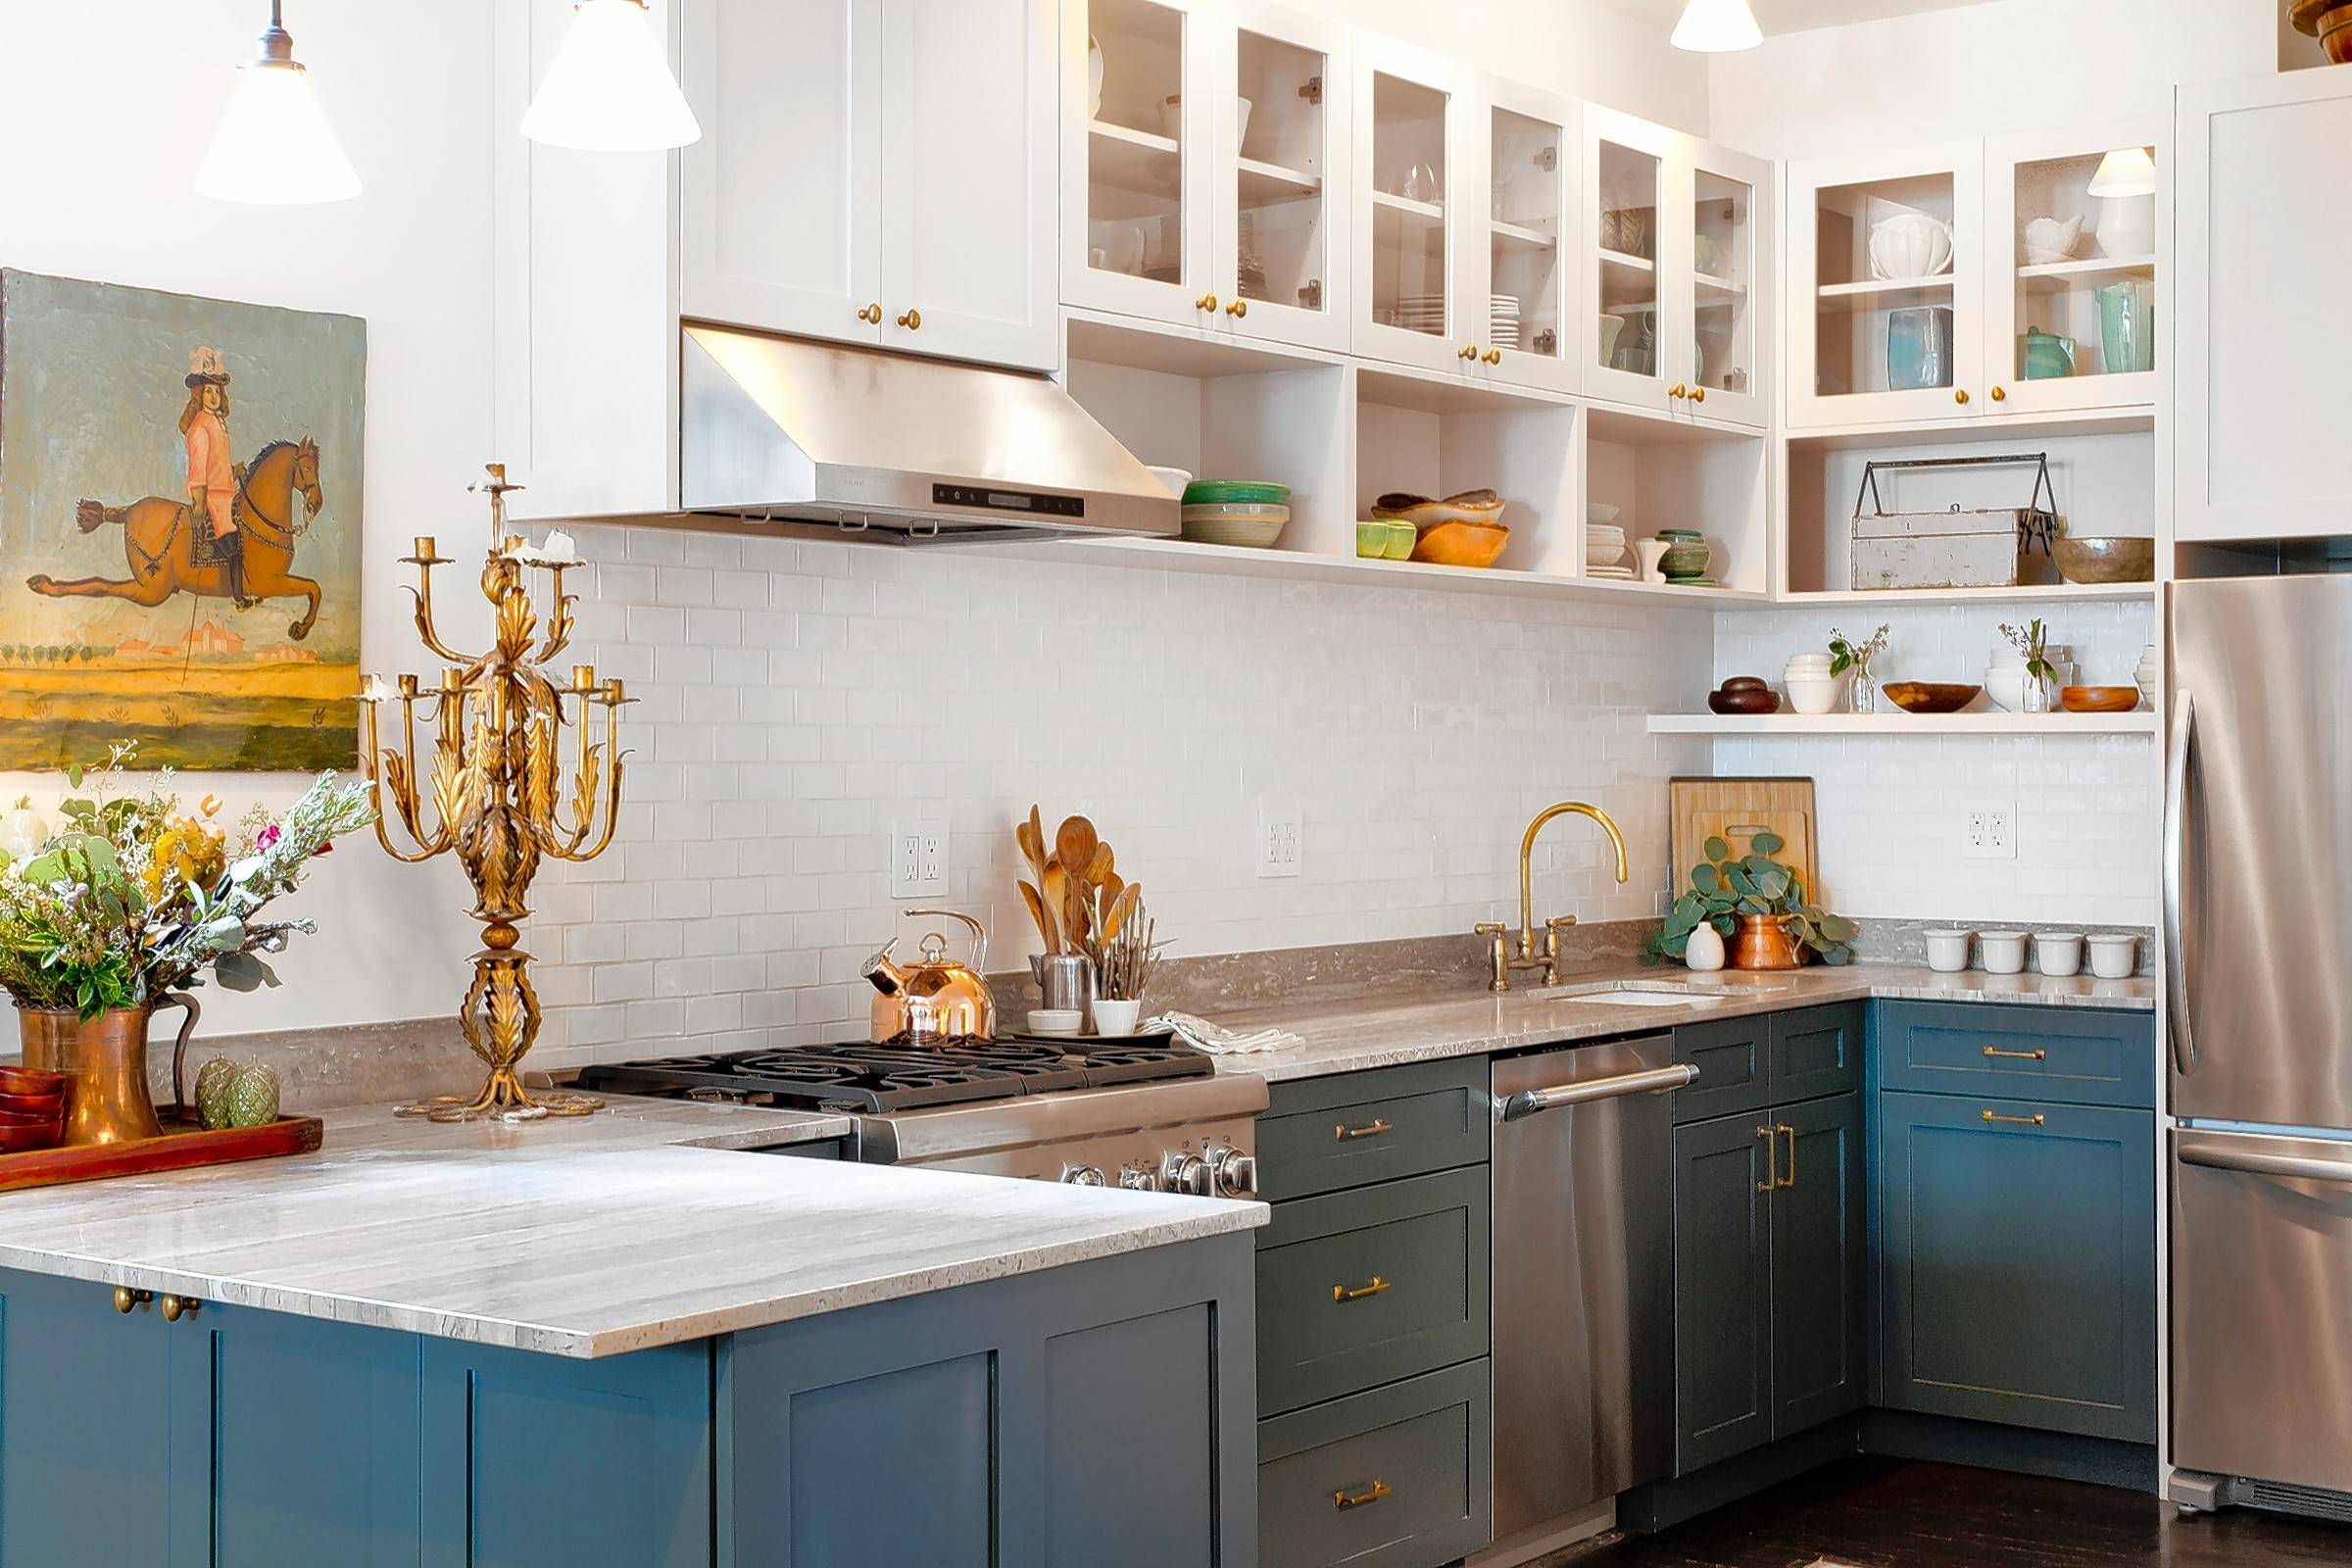 Although white will always be a classic color for kitchen design, homeowners are shying away from bland hues and injecting rich colors such as warm wood tones and neutrals.